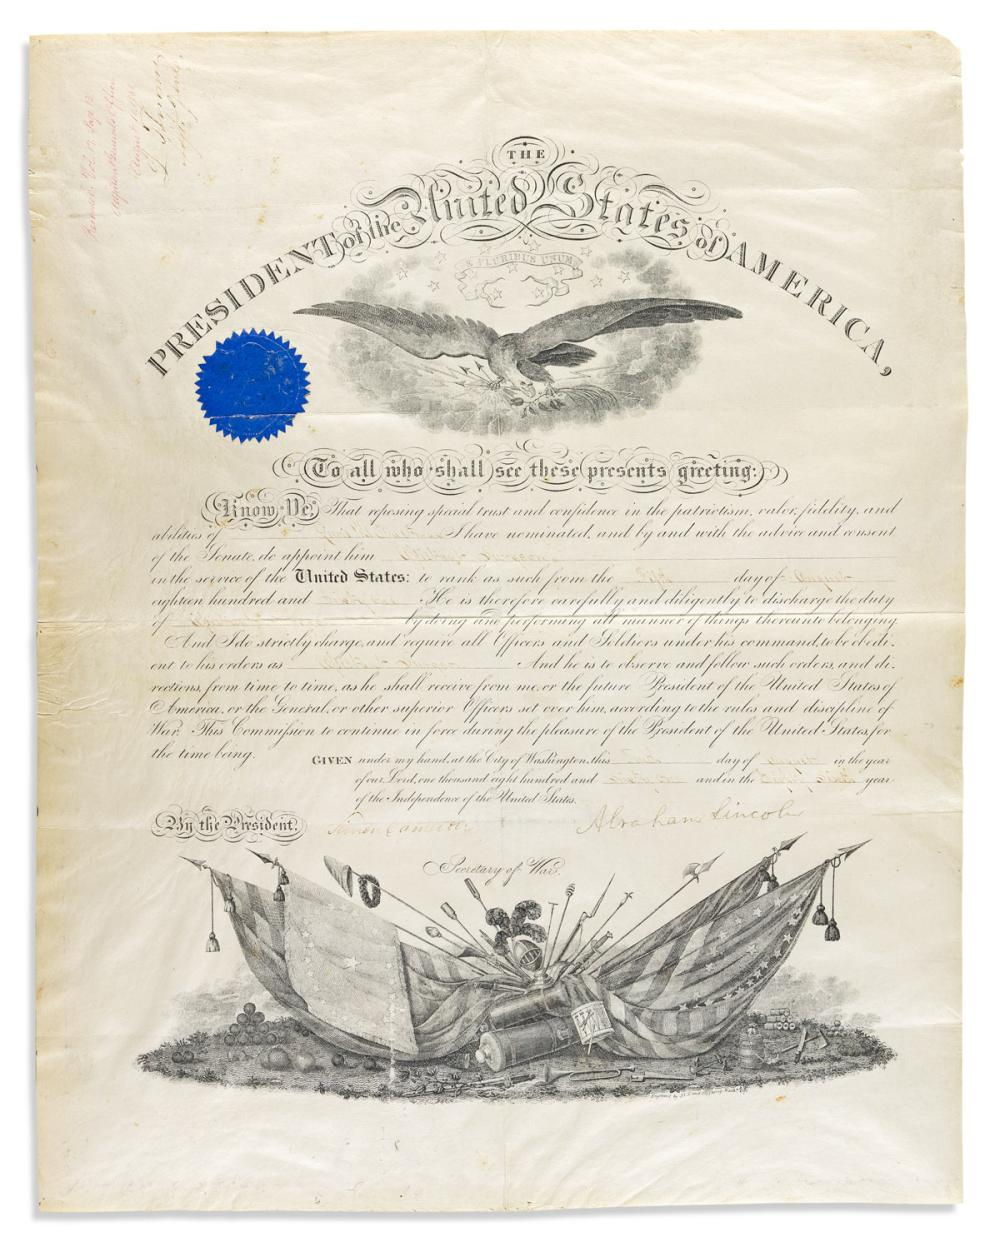 (CIVIL WAR.) LINCOLN, ABRAHAM. Partly-printed vellum Document Signed, military commission appointing Lewis H. Eastman Assistant Surgeon